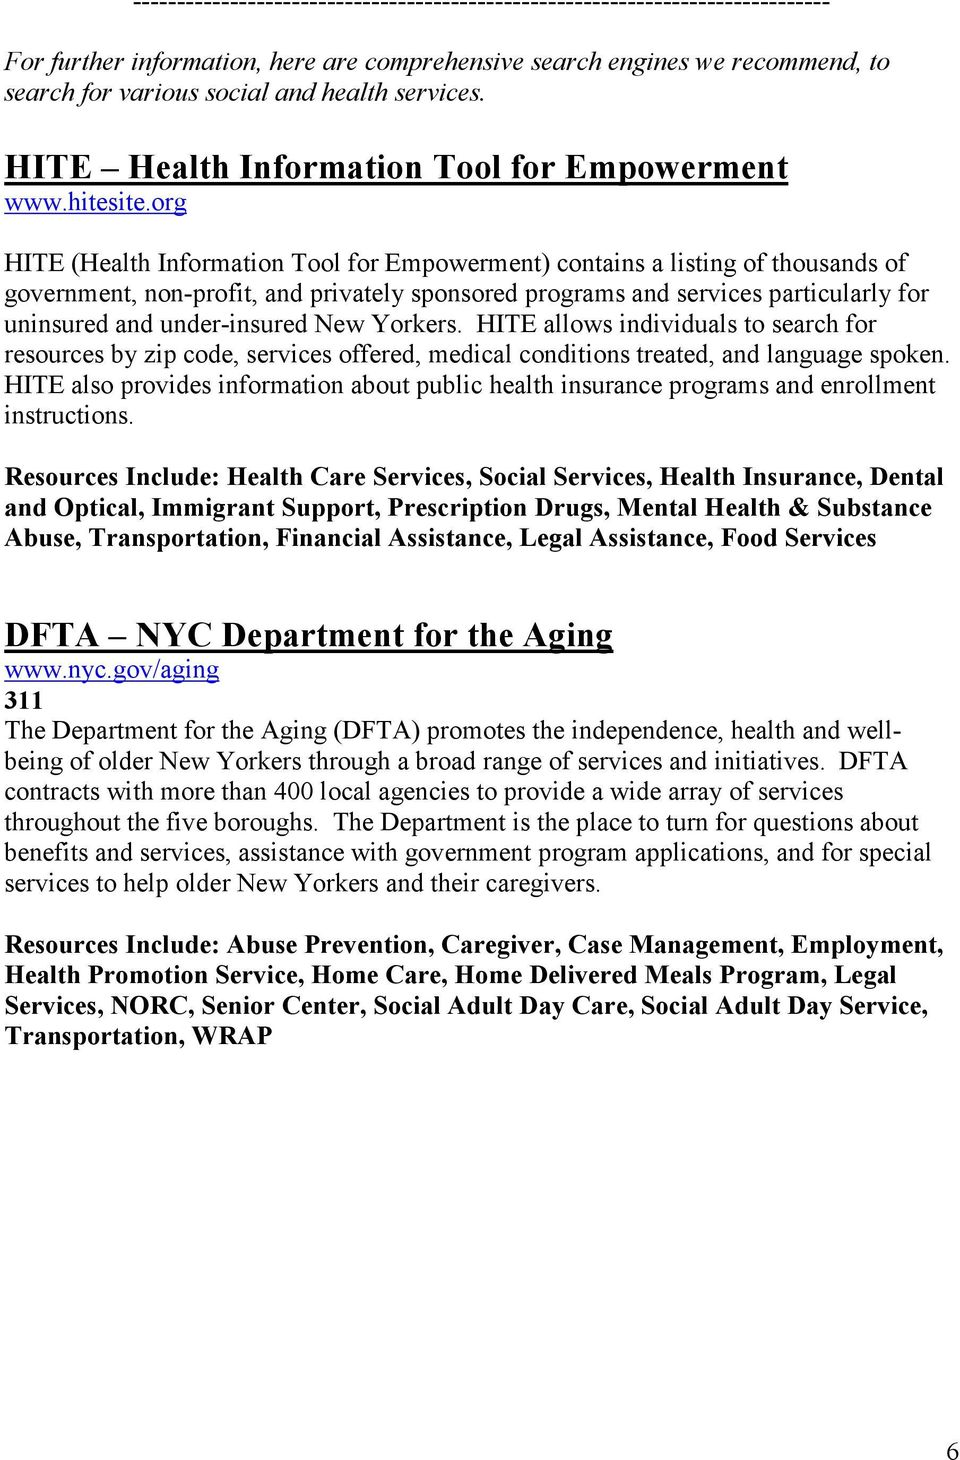 org HITE (Health Information Tool for Empowerment) contains a listing of thousands of government, non-profit, and privately sponsored programs and services particularly for uninsured and